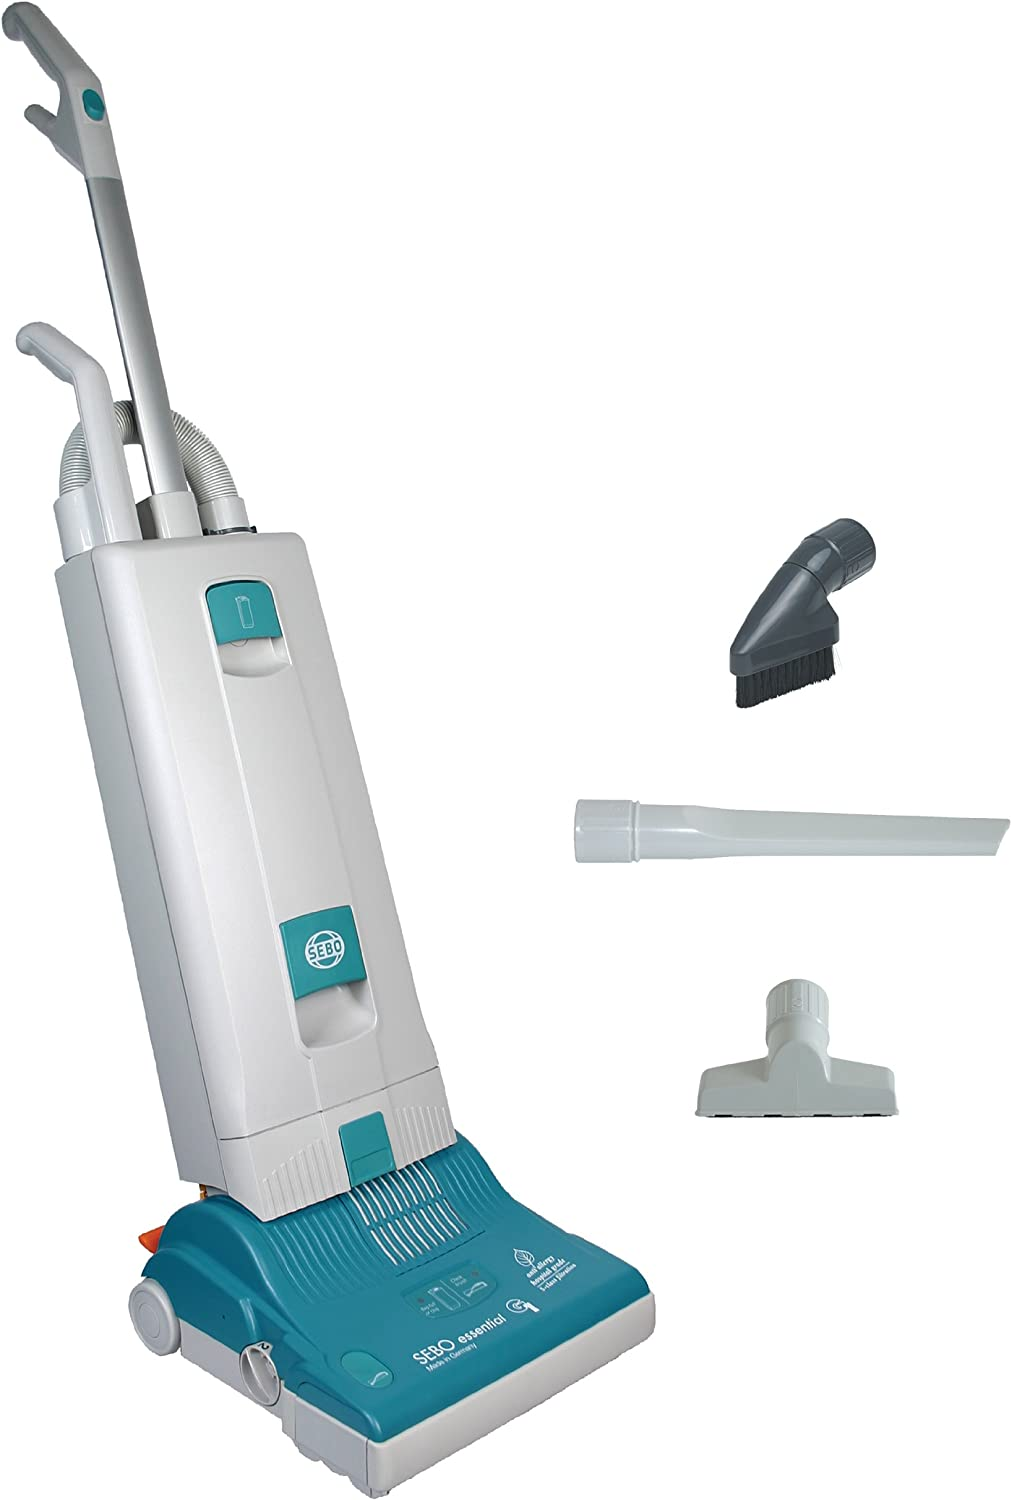 SEBO 9591AT Essential G1 Upright Vacuum with 12-Inch Power Head, Light Gray and Teal - Corded